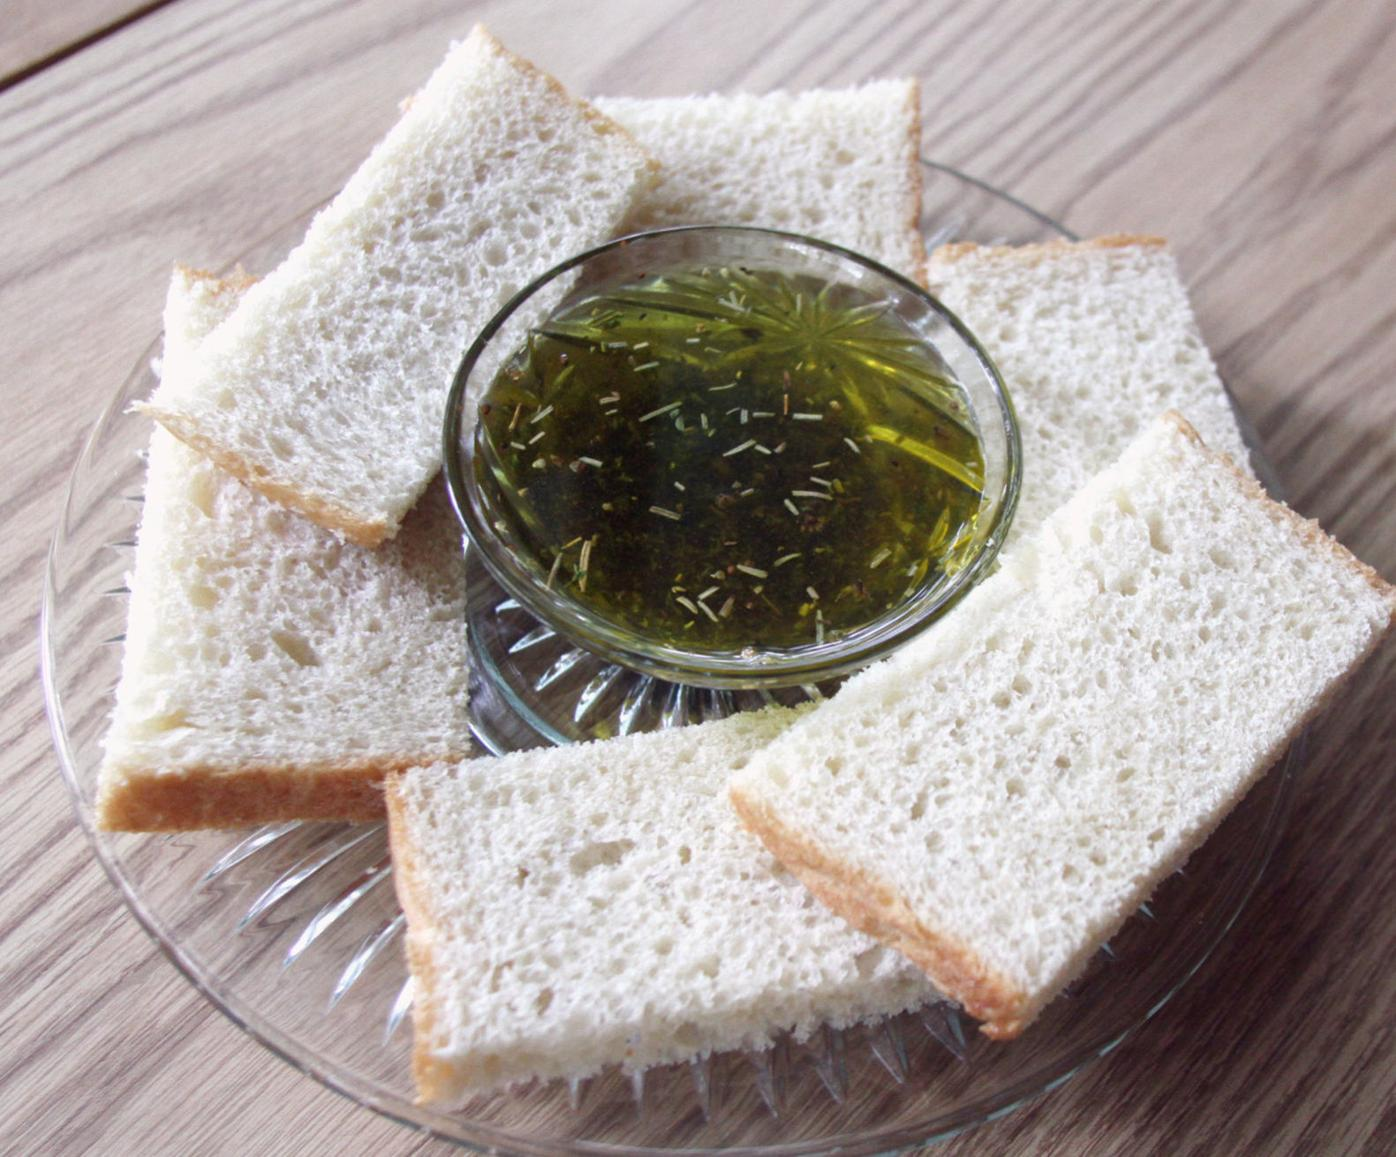 Olive oil with herbs for bread dipping